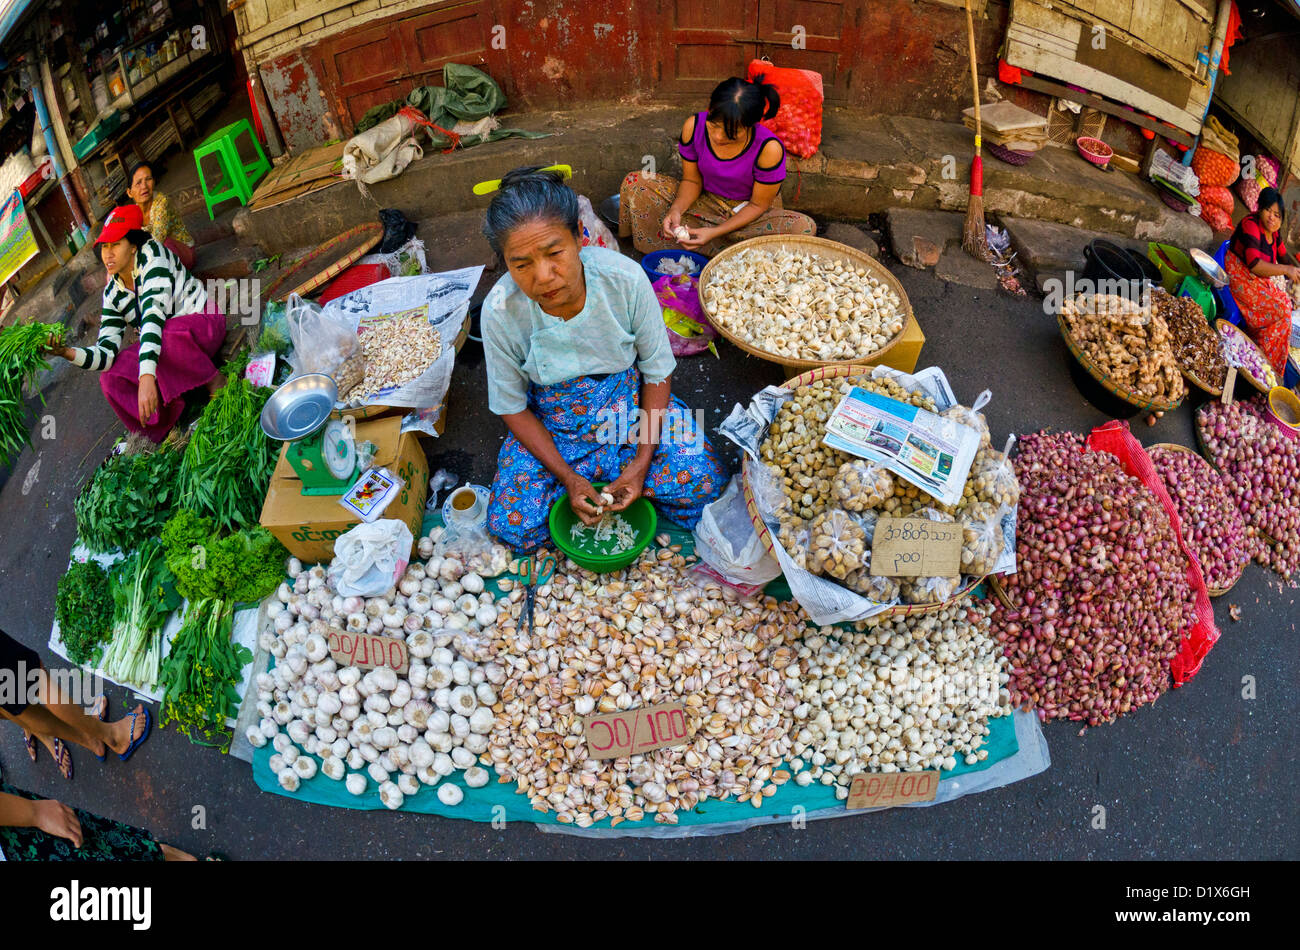 Busy street market in Central Yangon, Myanmar - Stock Image